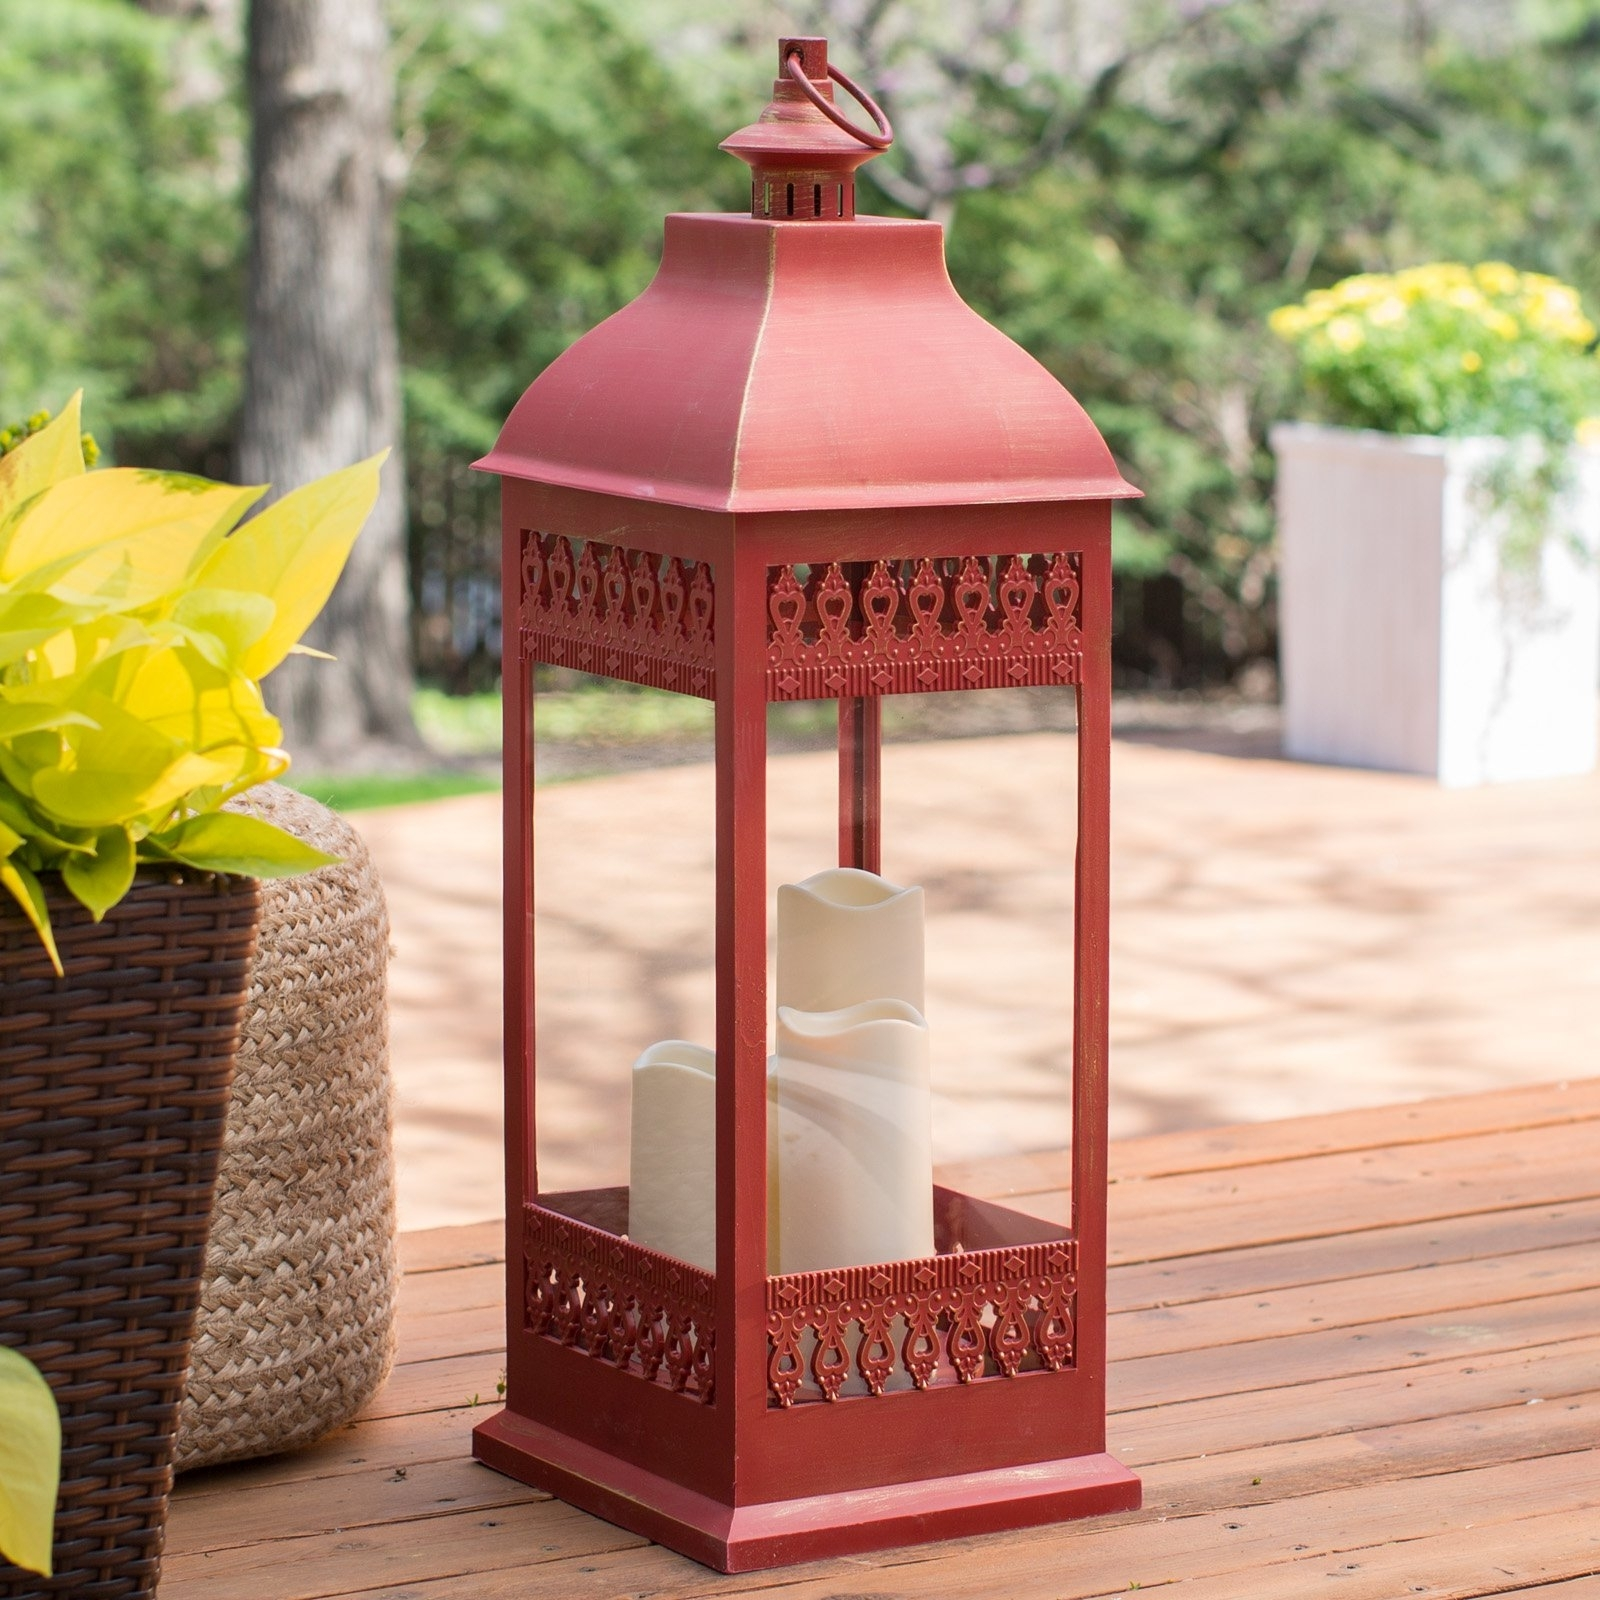 Smart Design San Nicola Lantern With Led Candles | Hayneedle Pertaining To Outdoor Lanterns With Led Candles (View 18 of 20)